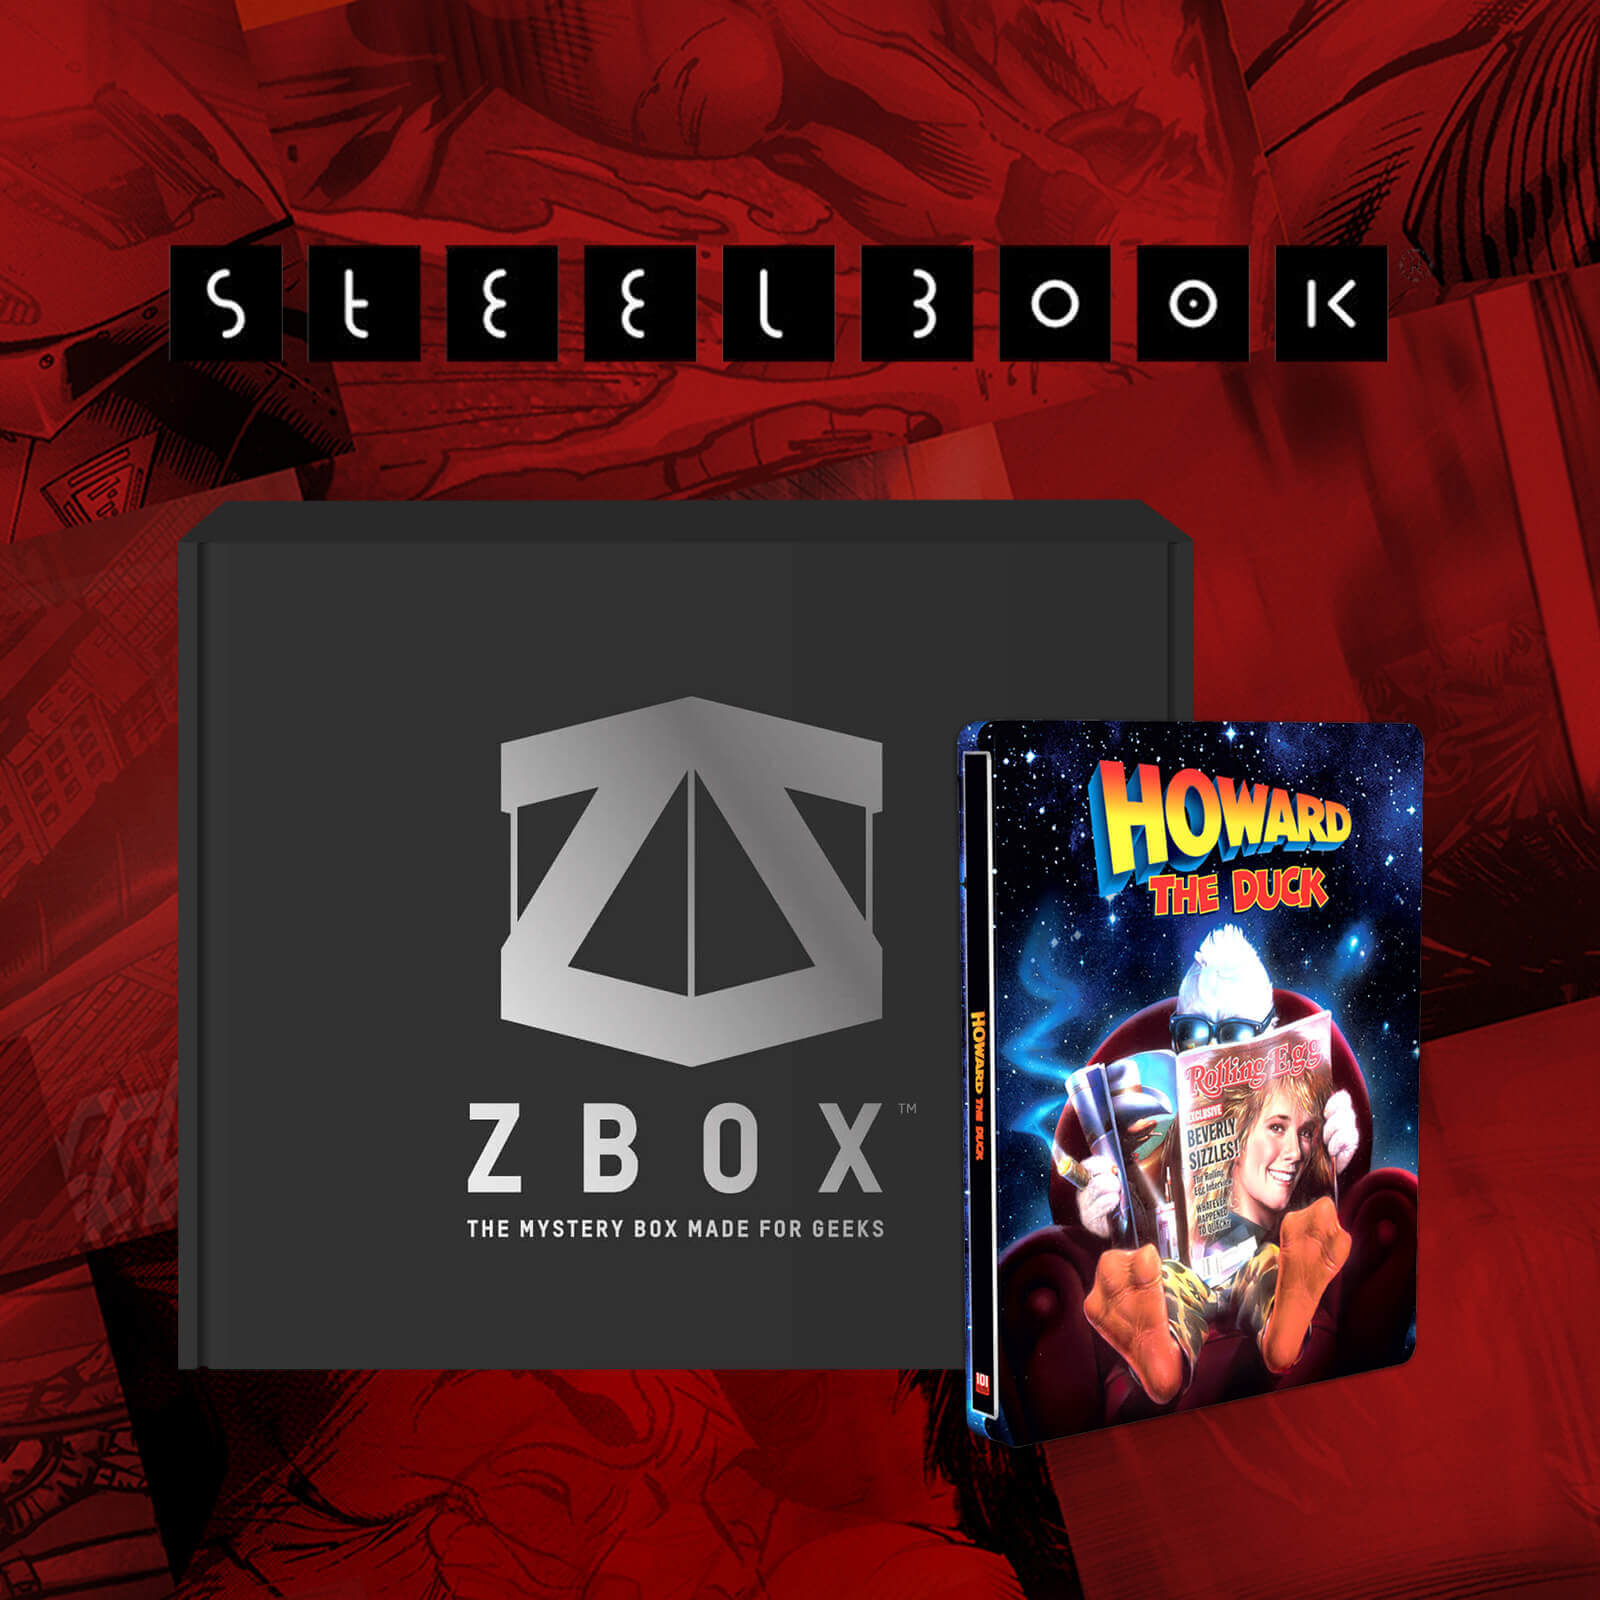 ZBOX x Steelbook Misteriosa Exclusiva Zavvi - Marvel